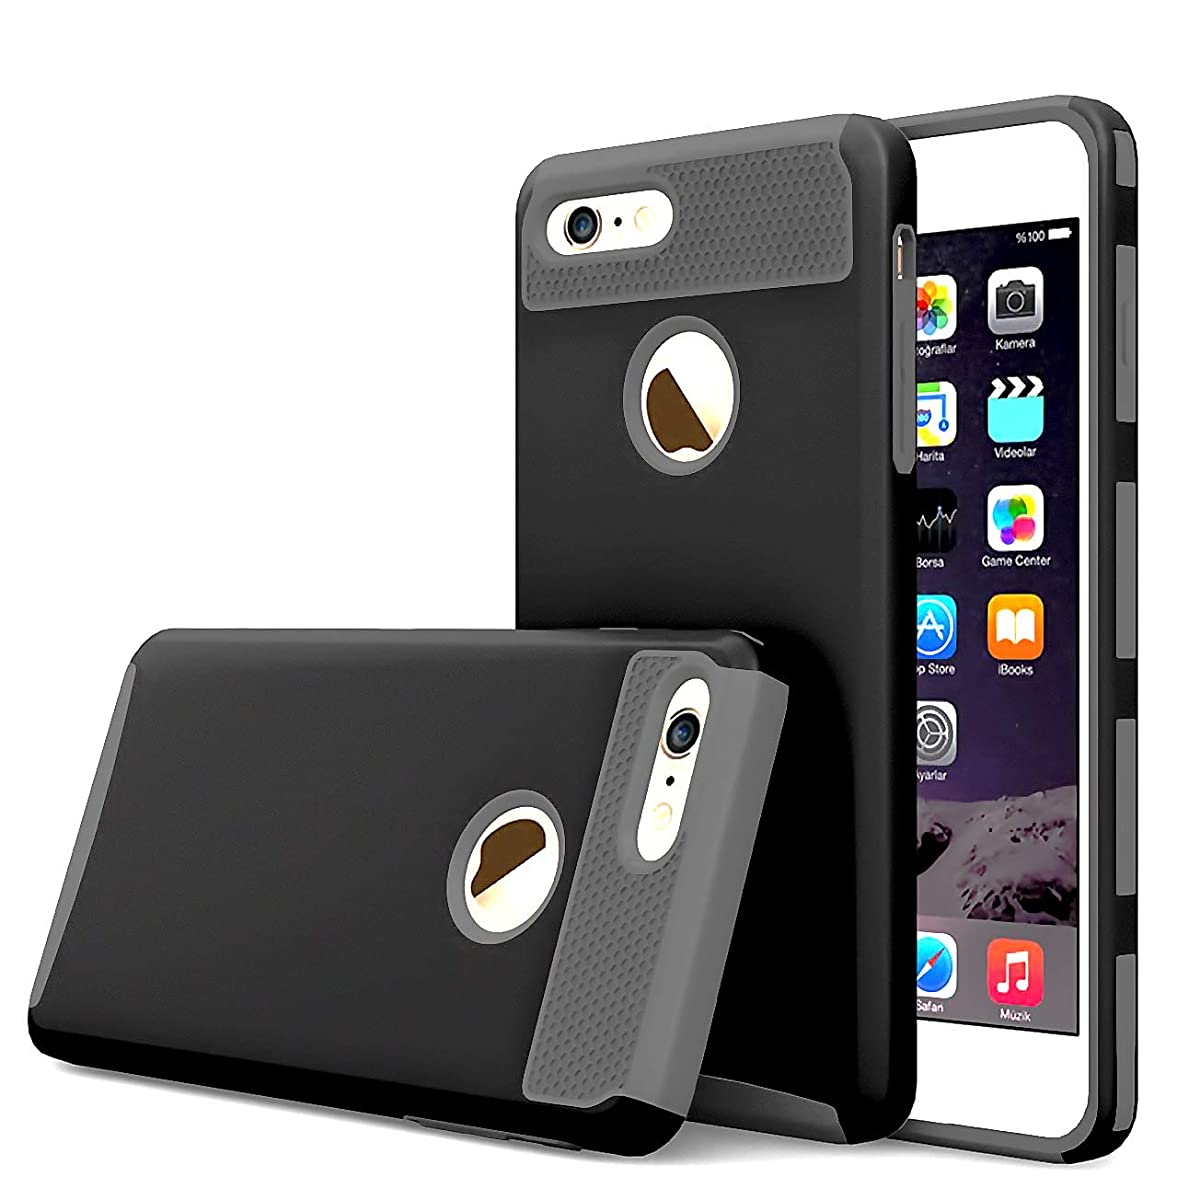 iBarbe Black+Gray Slim Fit case for iPhone 7,iPhone 8, Rubber Hard Plastic Shell Case Full Protective Anti-Scratch Resistant Cover Case for iPhone 7 (2016) / iPhone 8 (2017) - Black/Rosegold